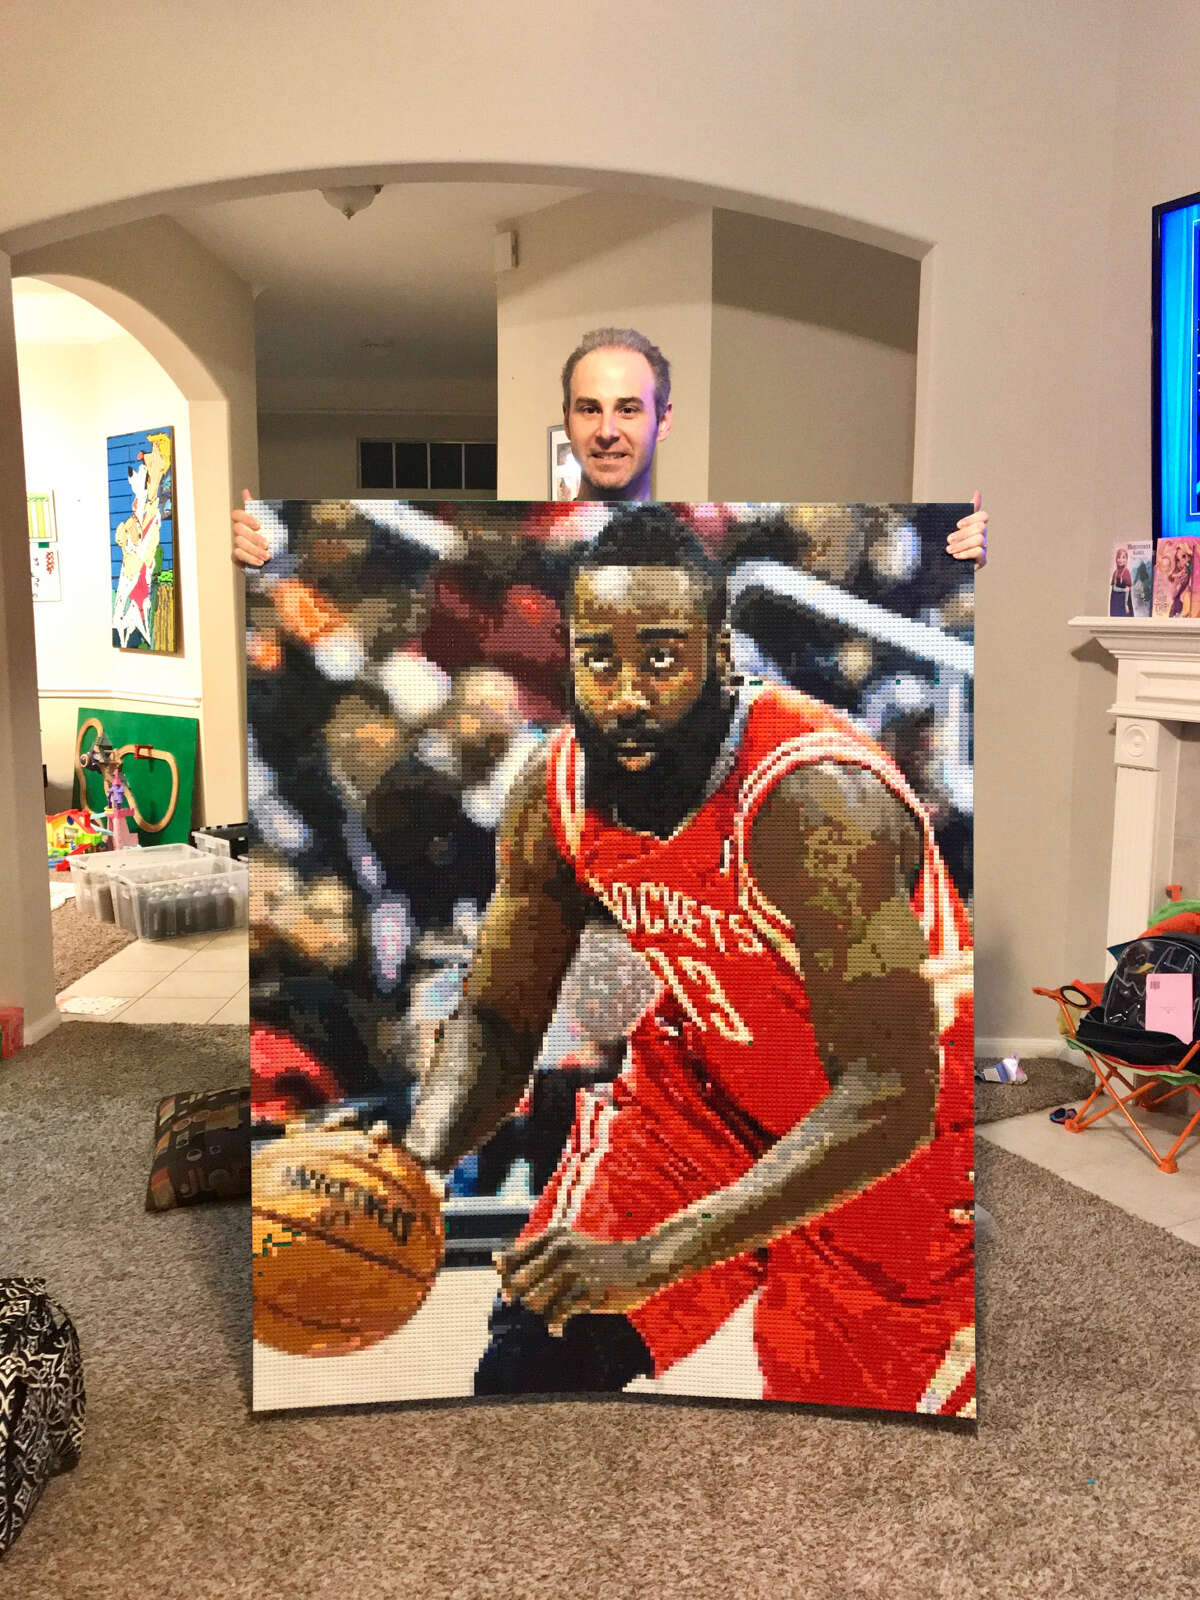 Houston-area man Joseph Kraham created a LEGO mosaic of Rockets star James Harden using around 28,000 pieces and 250 different color shades.